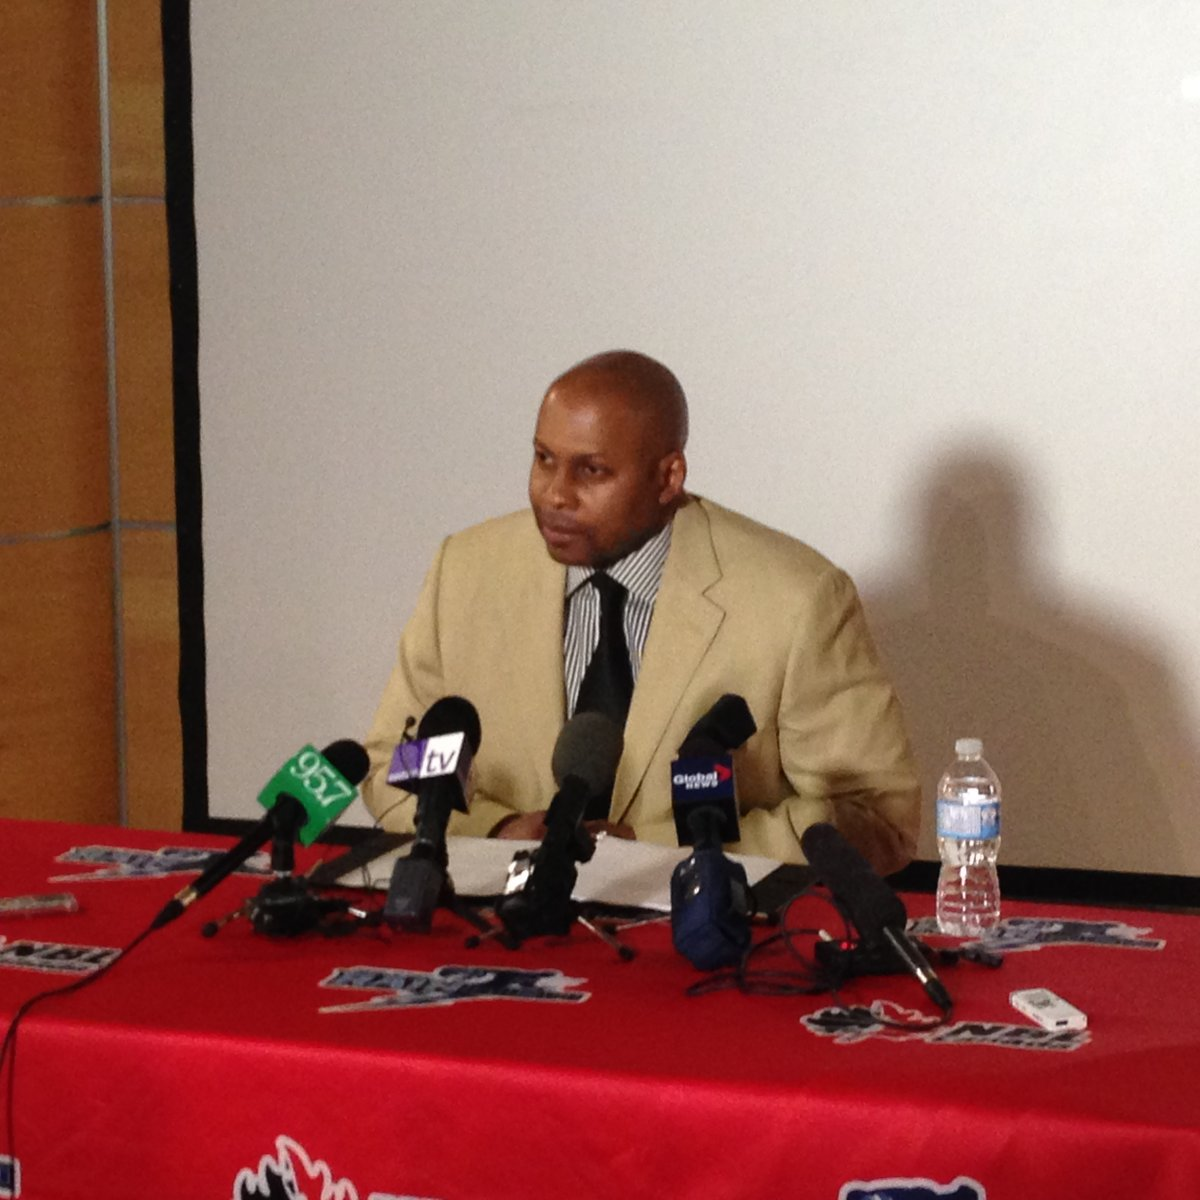 Andre Levingston addresses the media in May, 2015.